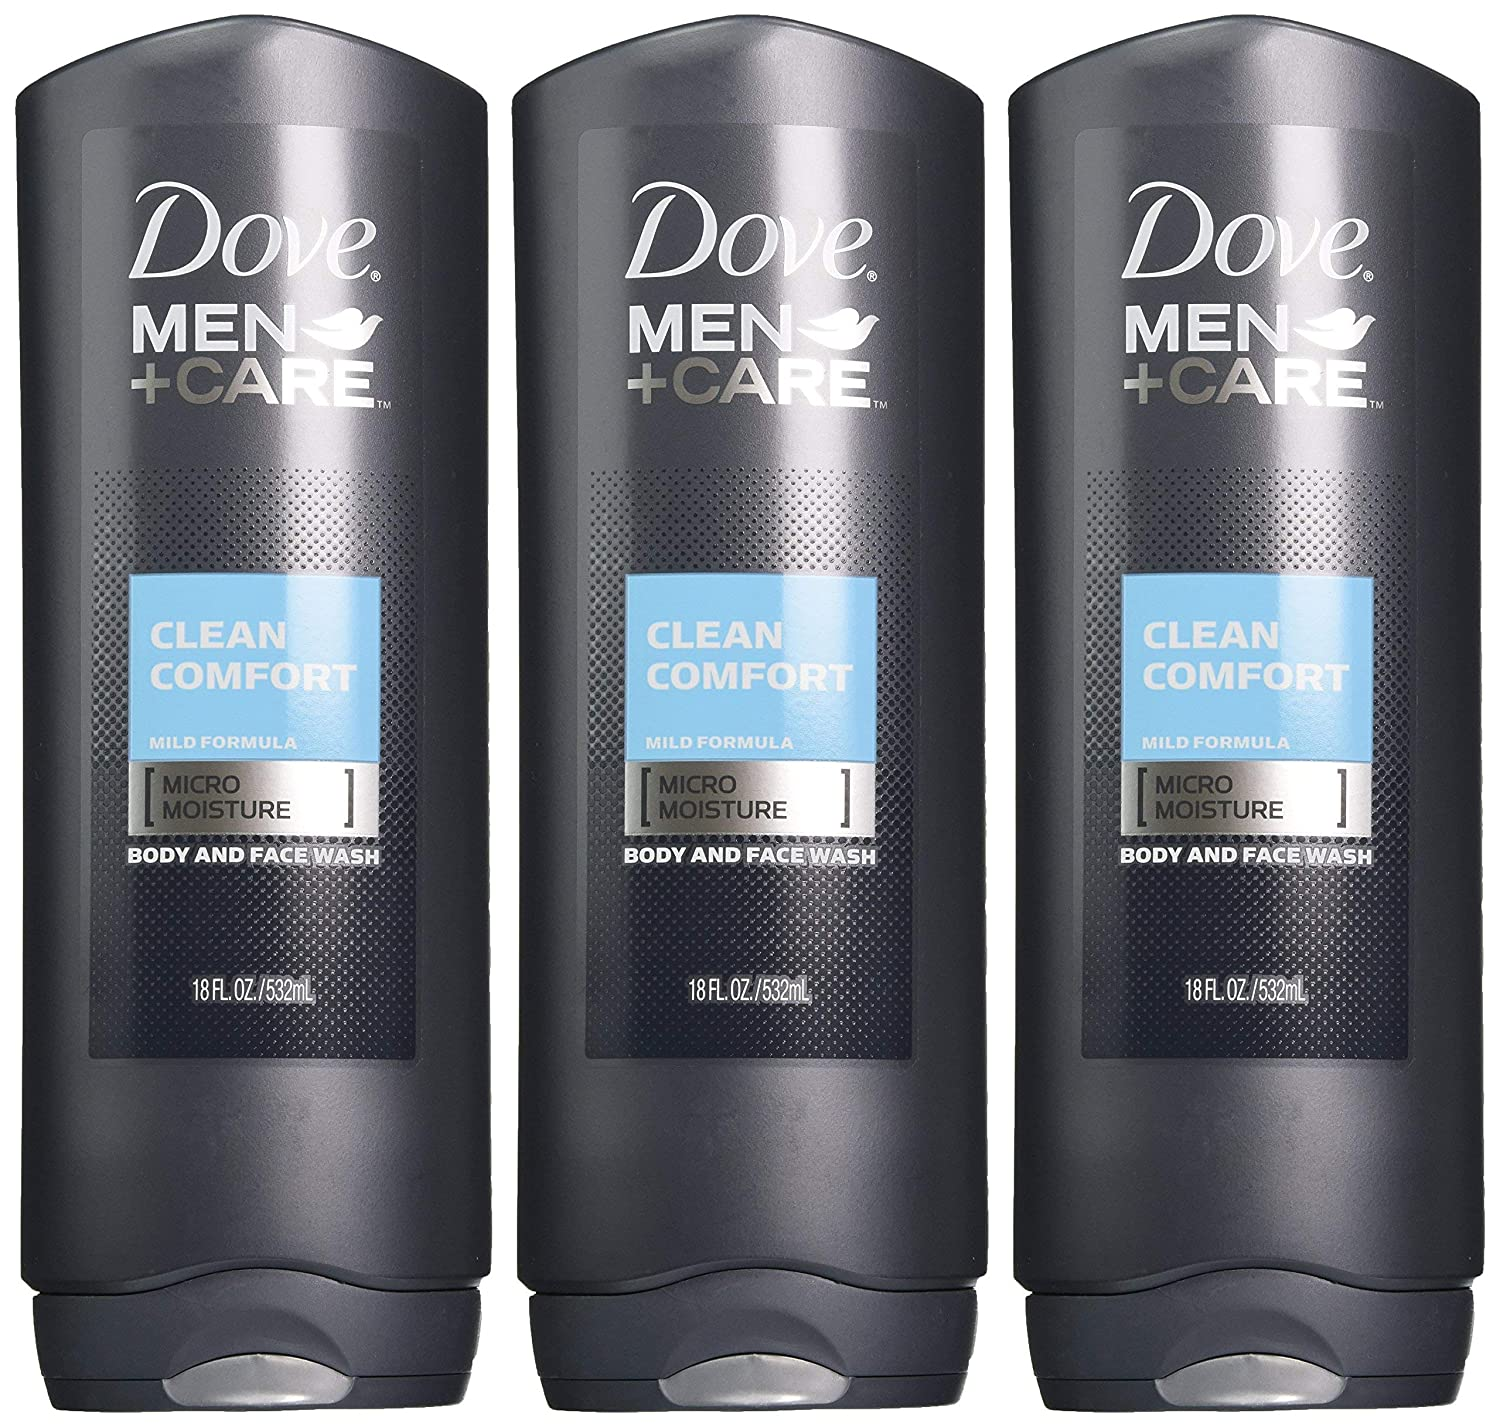 Dove Men+Care Body Wash, Clean Comfort 18 Fl Oz (Pack of 3)